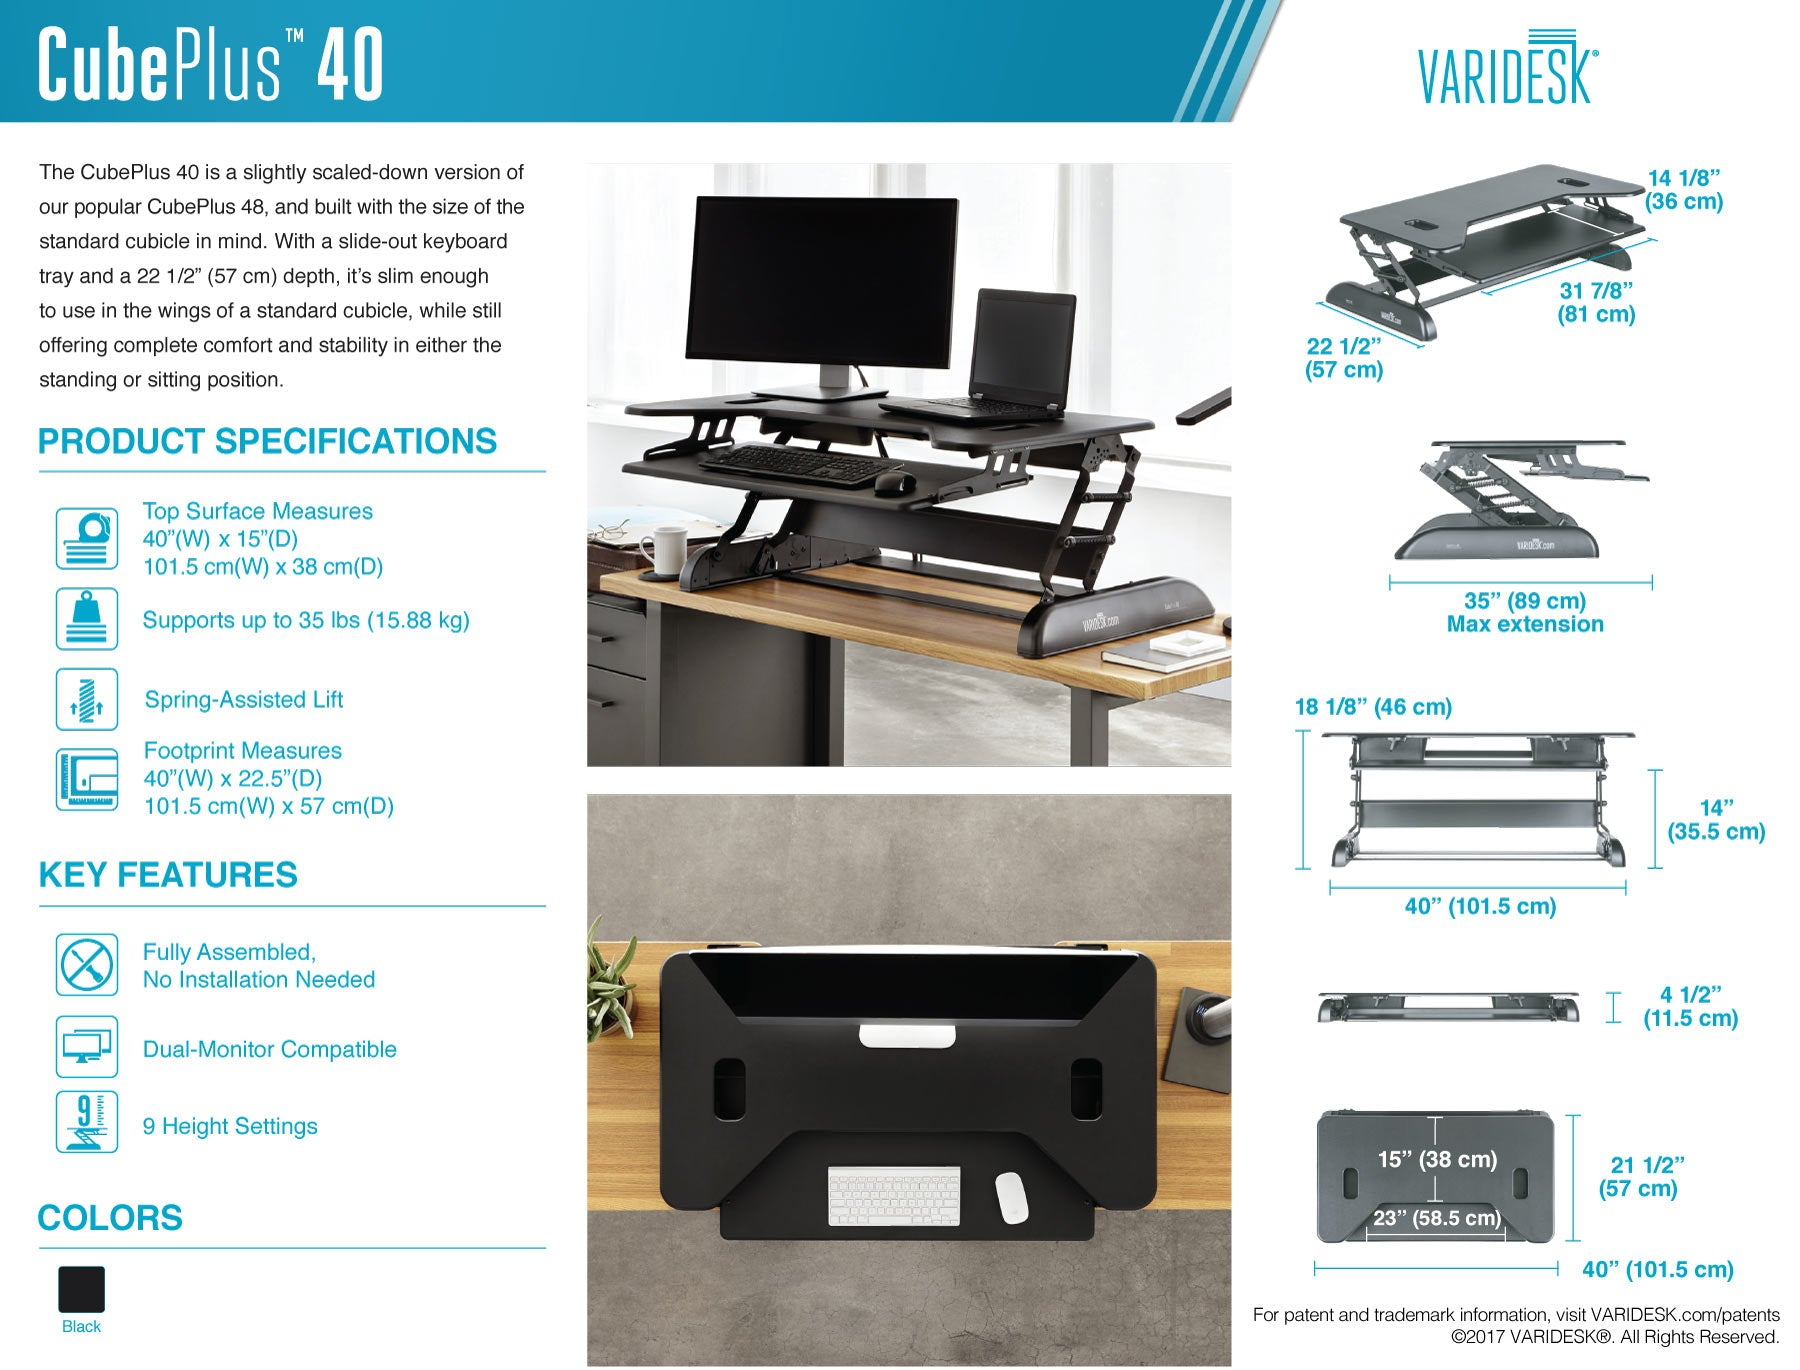 varidesk-cube-plus-40-technical-specifications